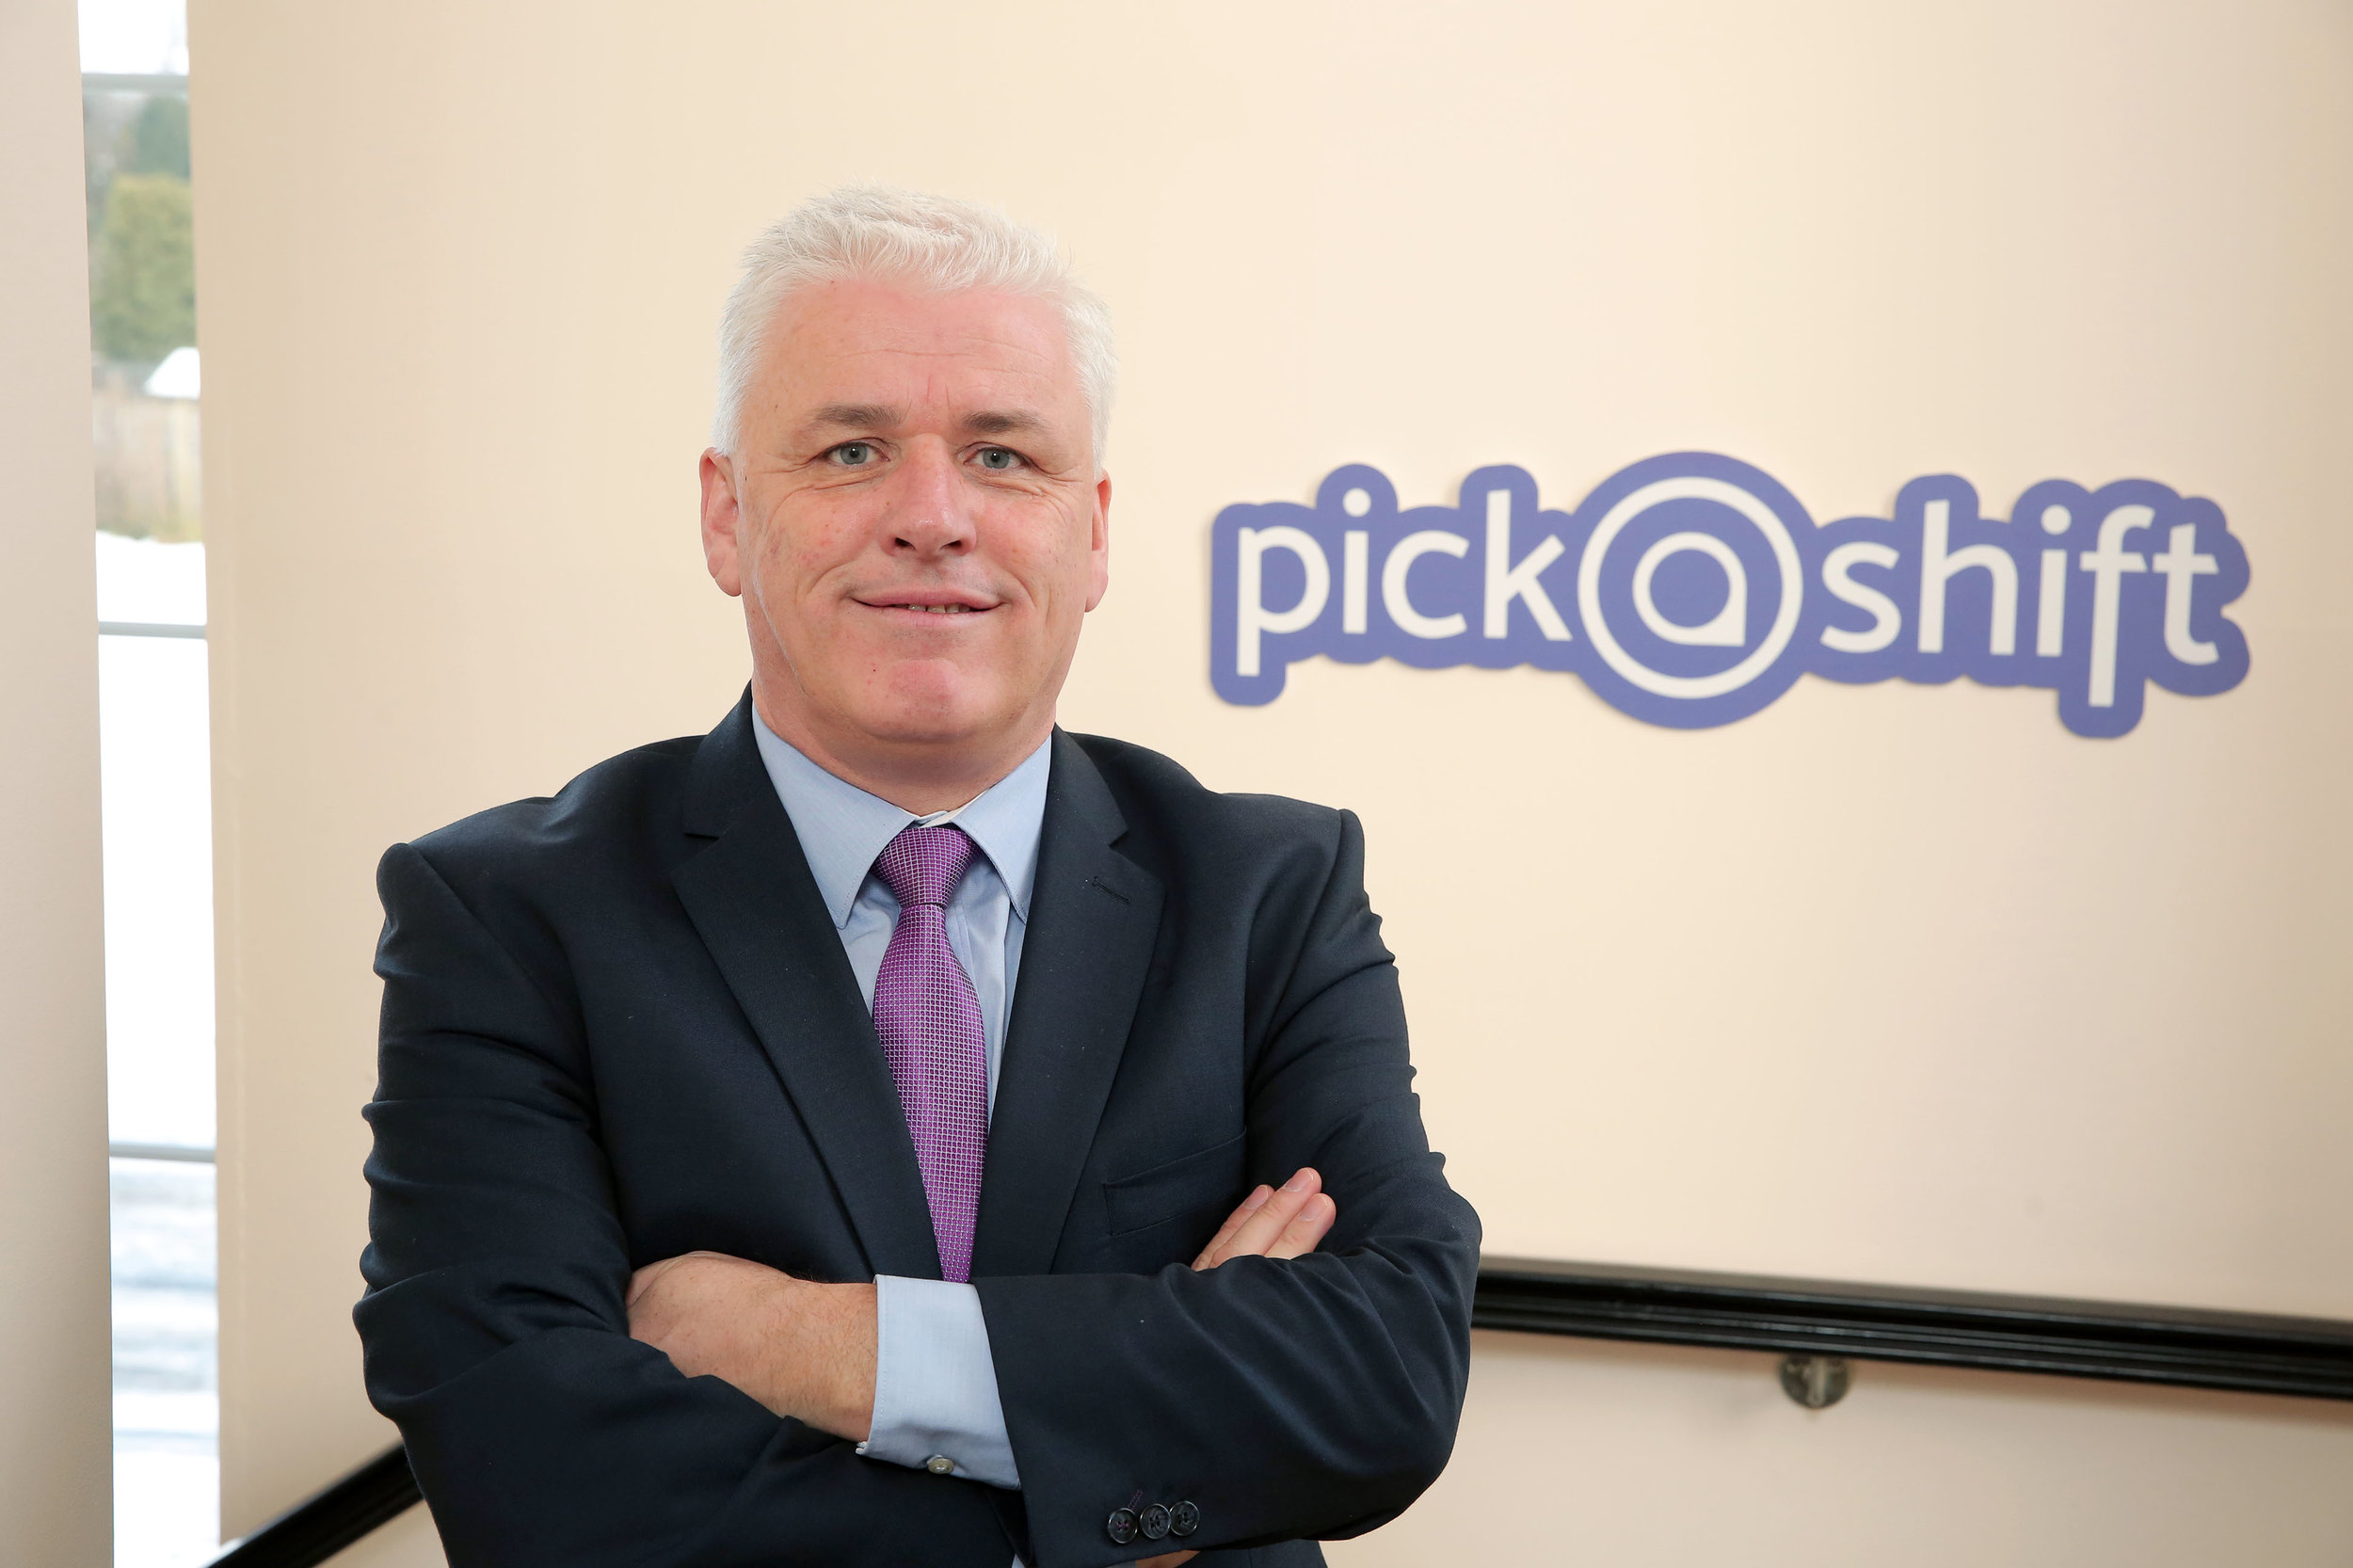 Former MLA and Health spokesperson Fearghal McKinney, one of the 'PickaShift' founders